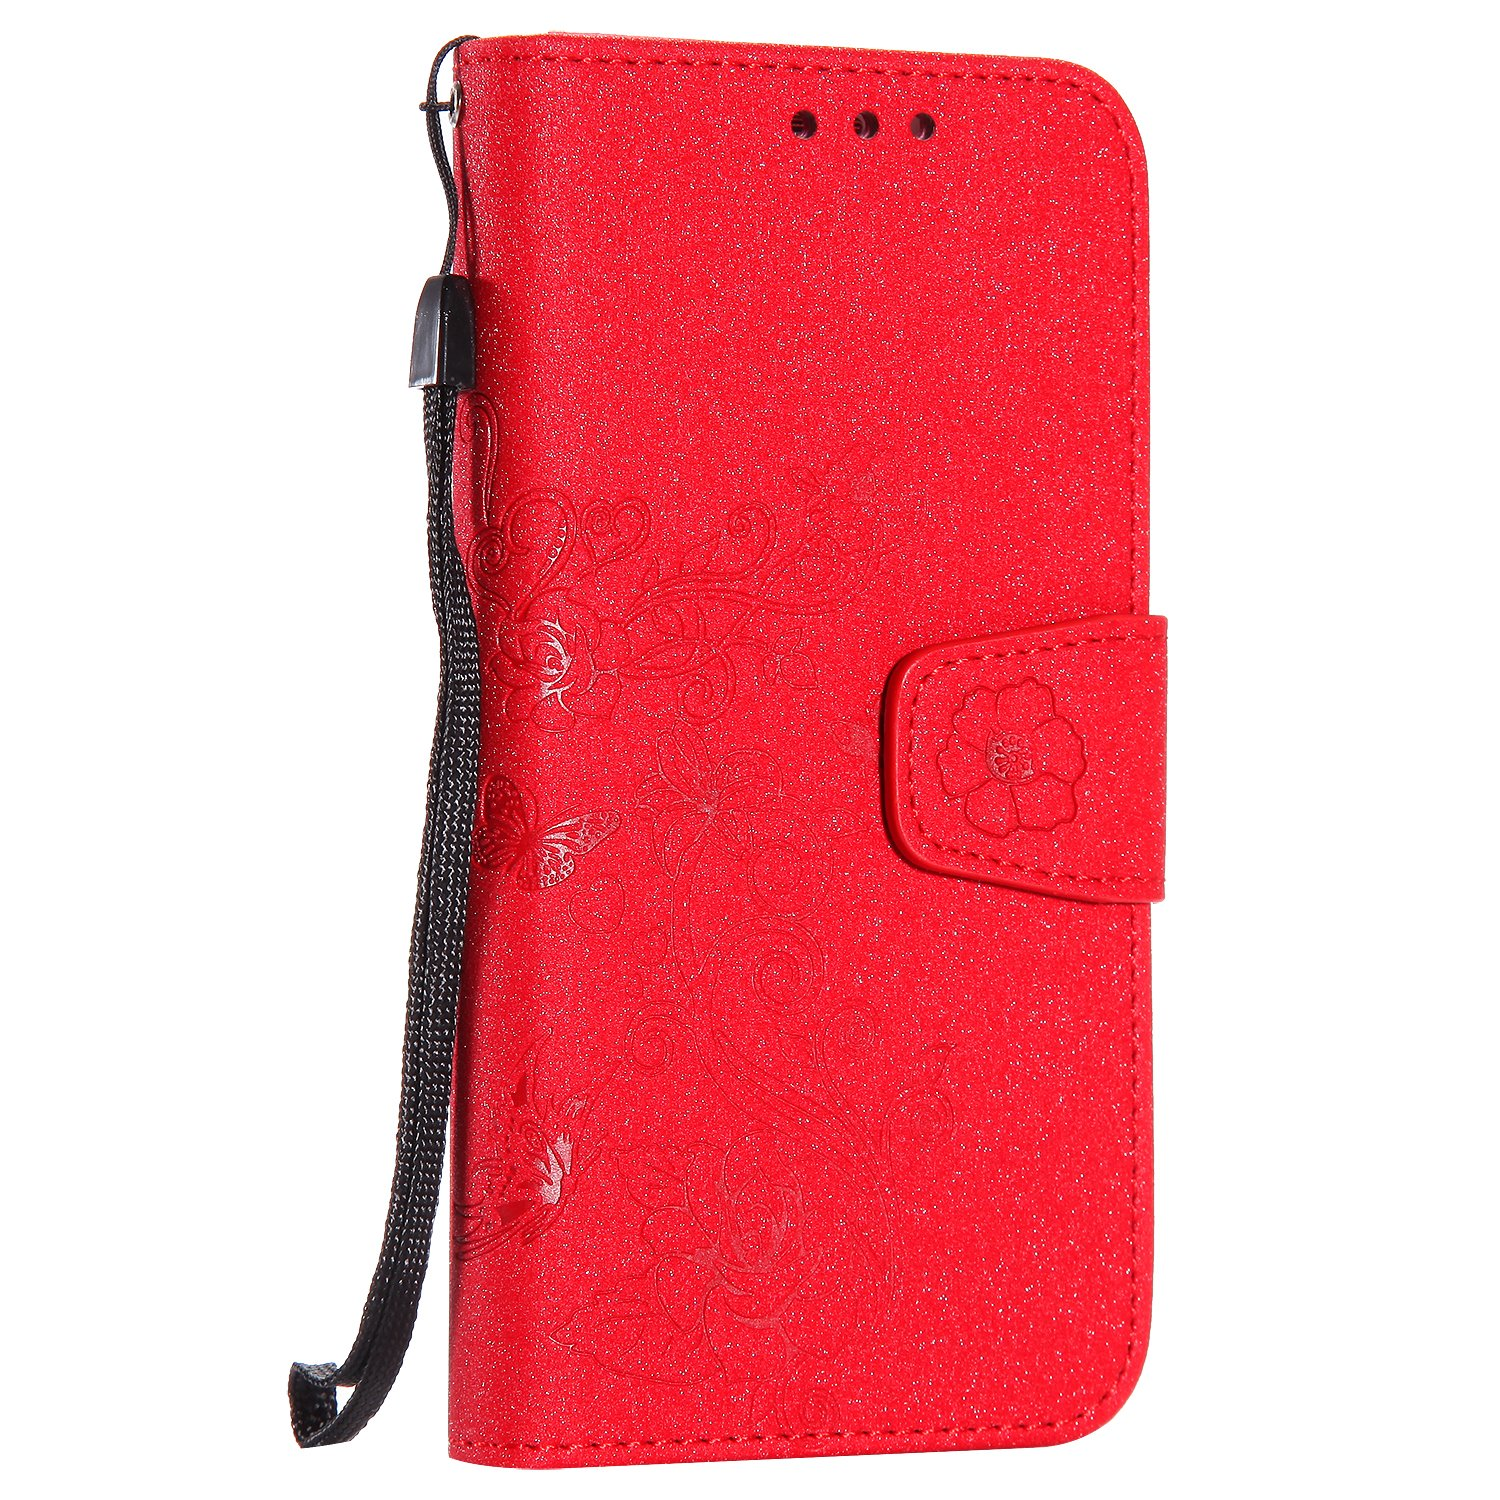 Lomogo [Detachable] Galaxy S7 Edge Leather Wallet Case with Kickstand Credit Card Holder Magnetic Closure Shockproof Flip Case Cover for Samsung Galaxy S7 Edge - LOHHA10103 Red